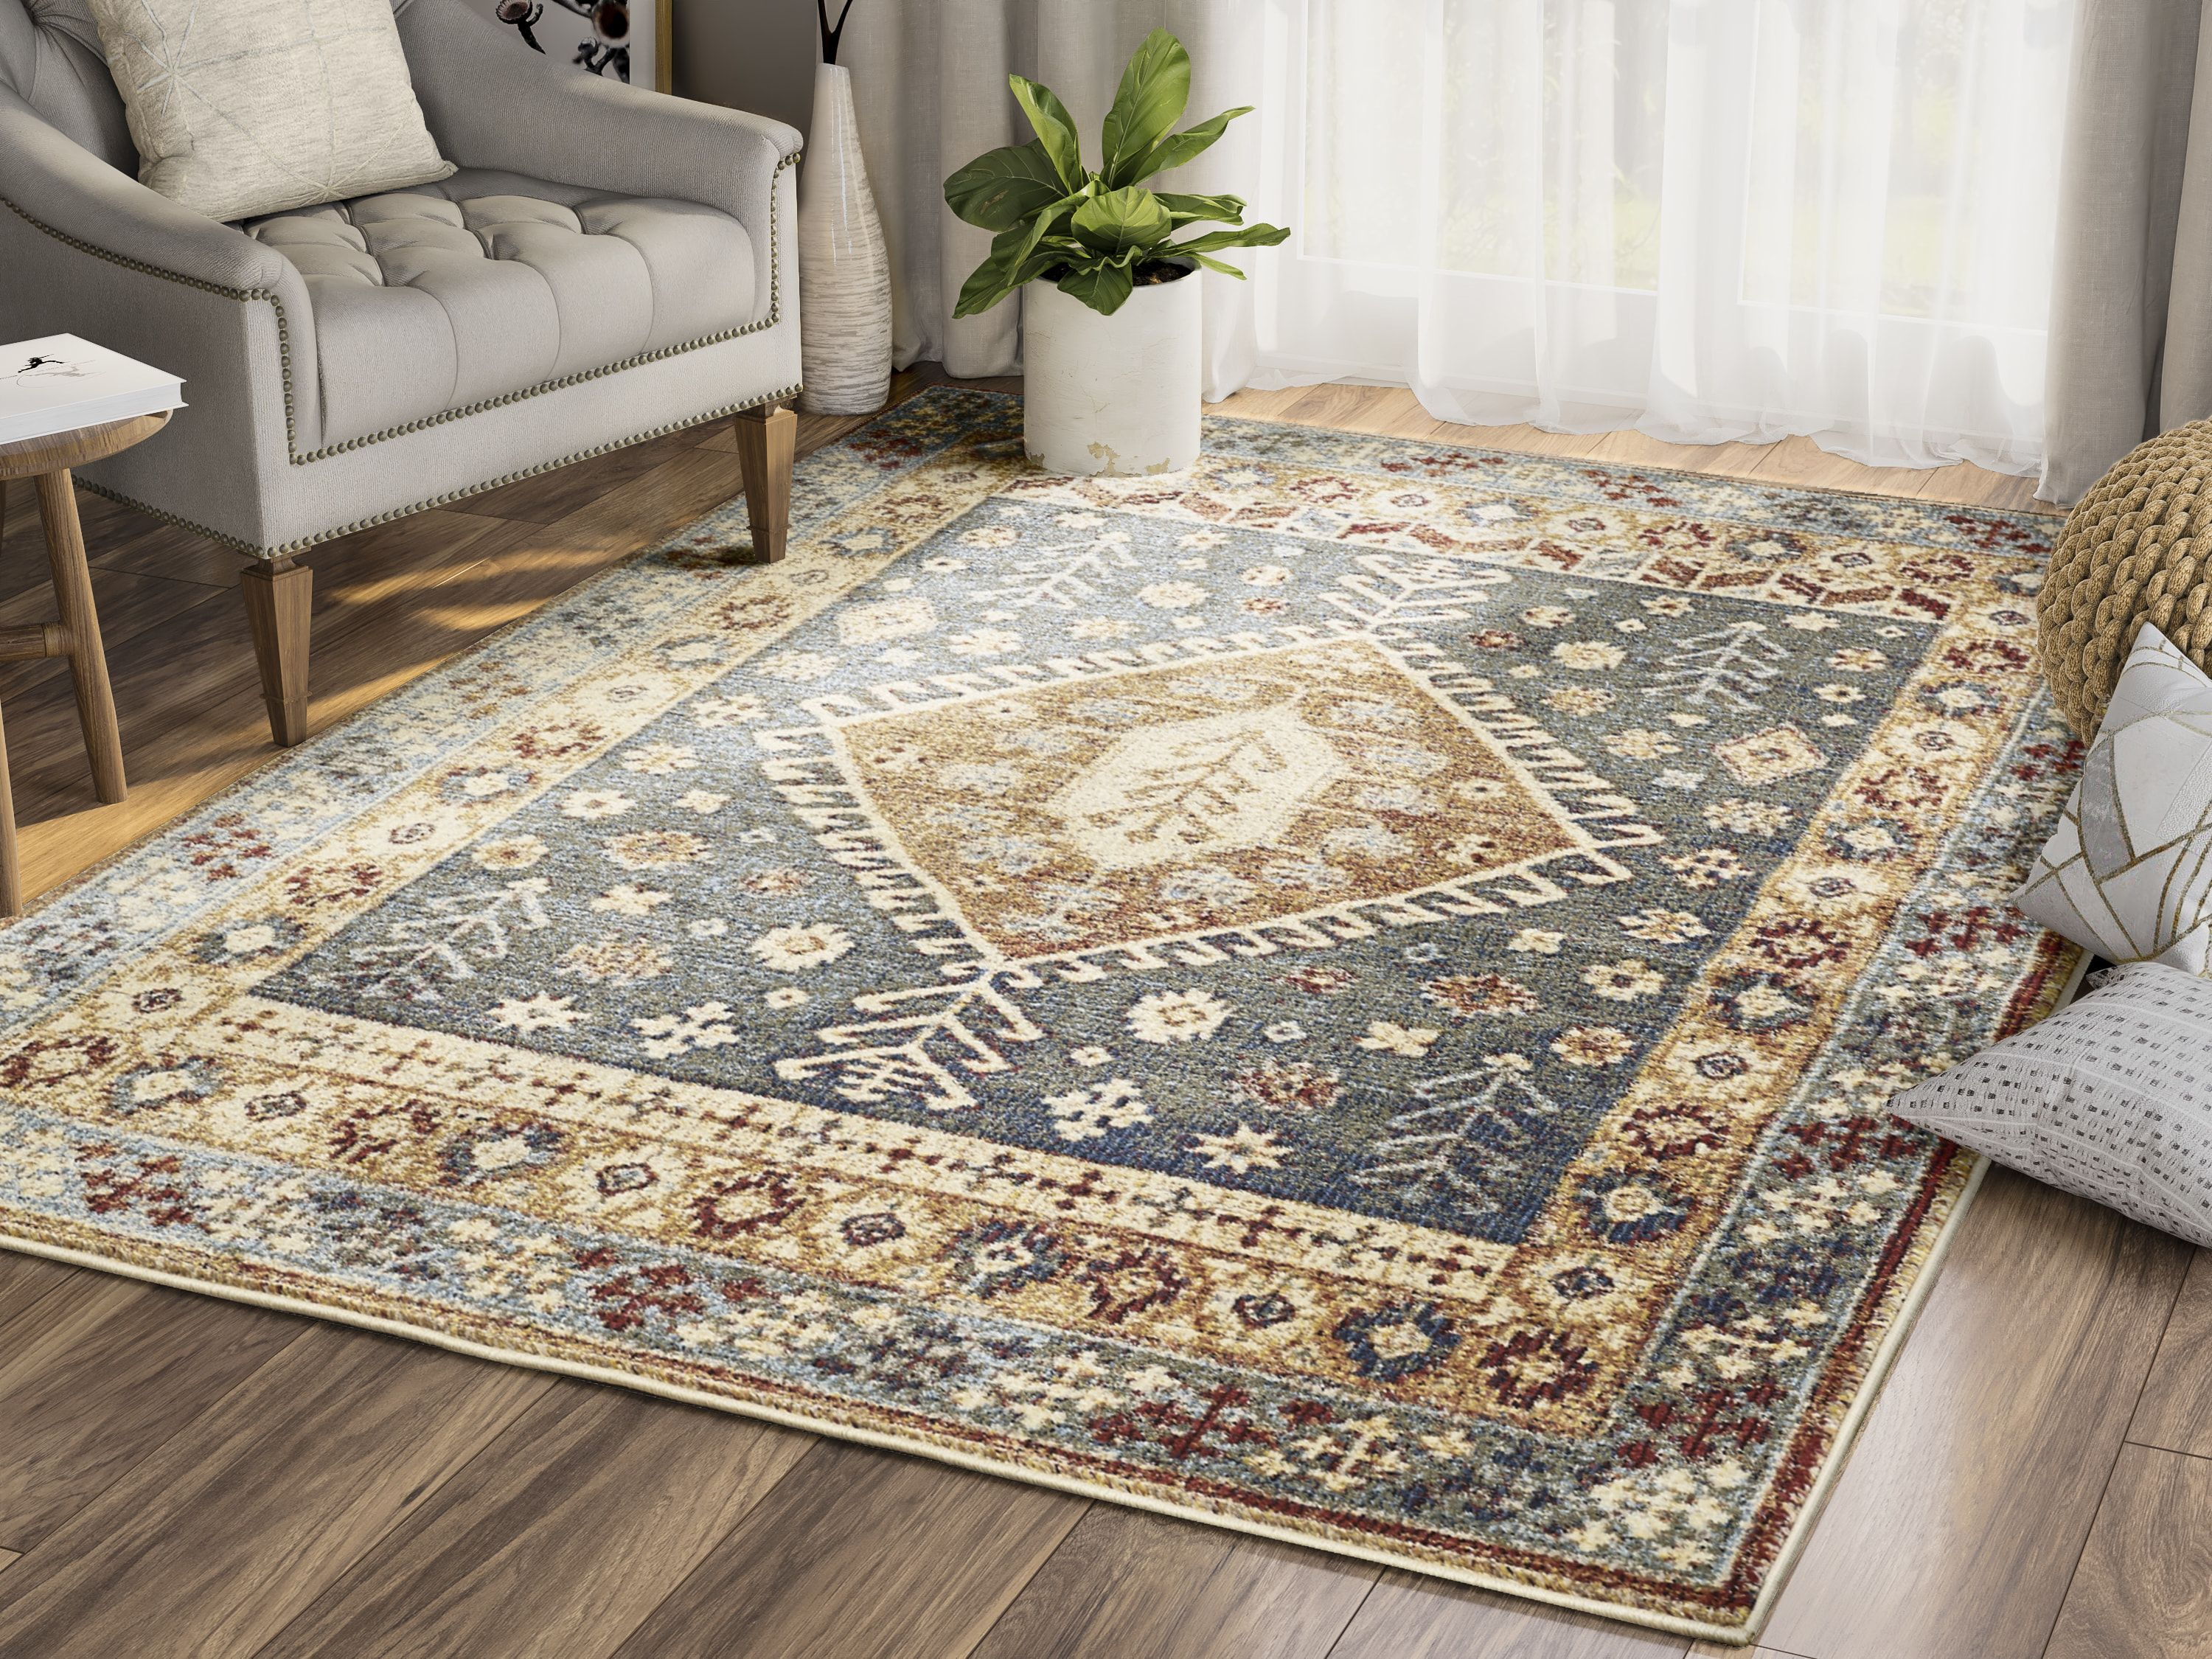 Mes100a Color Blue Size 7 9 X 10 2 Floral Area Rugs Area